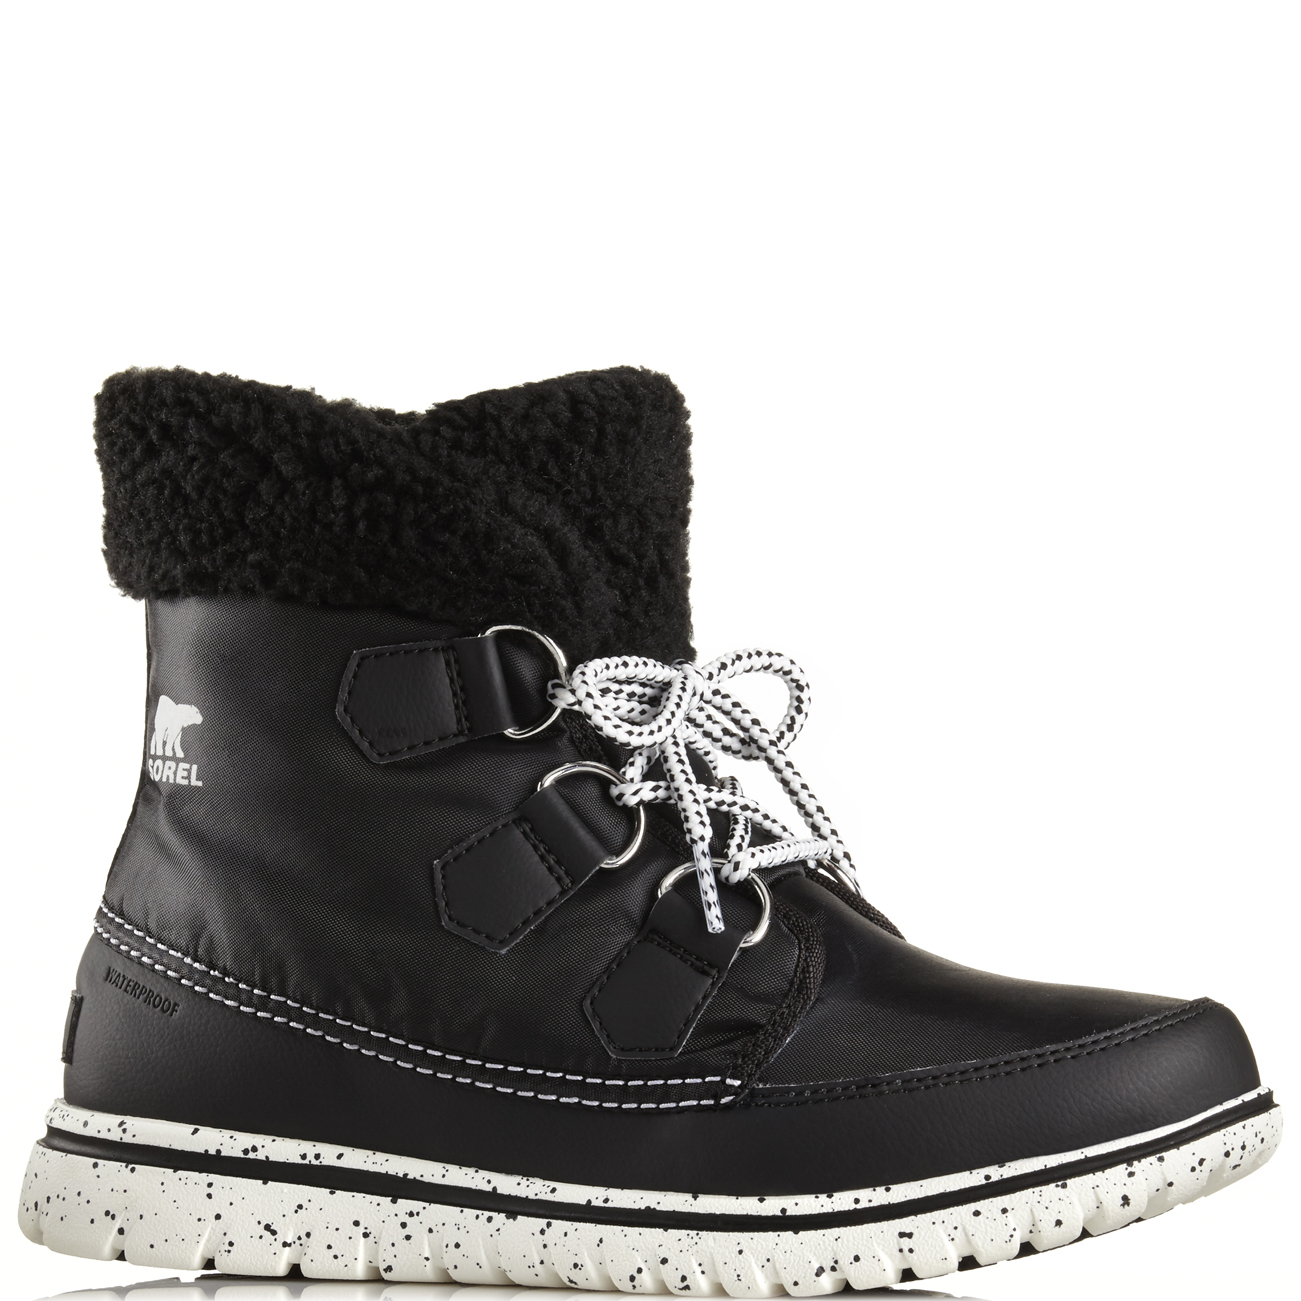 Snow Walking Shoes Boots